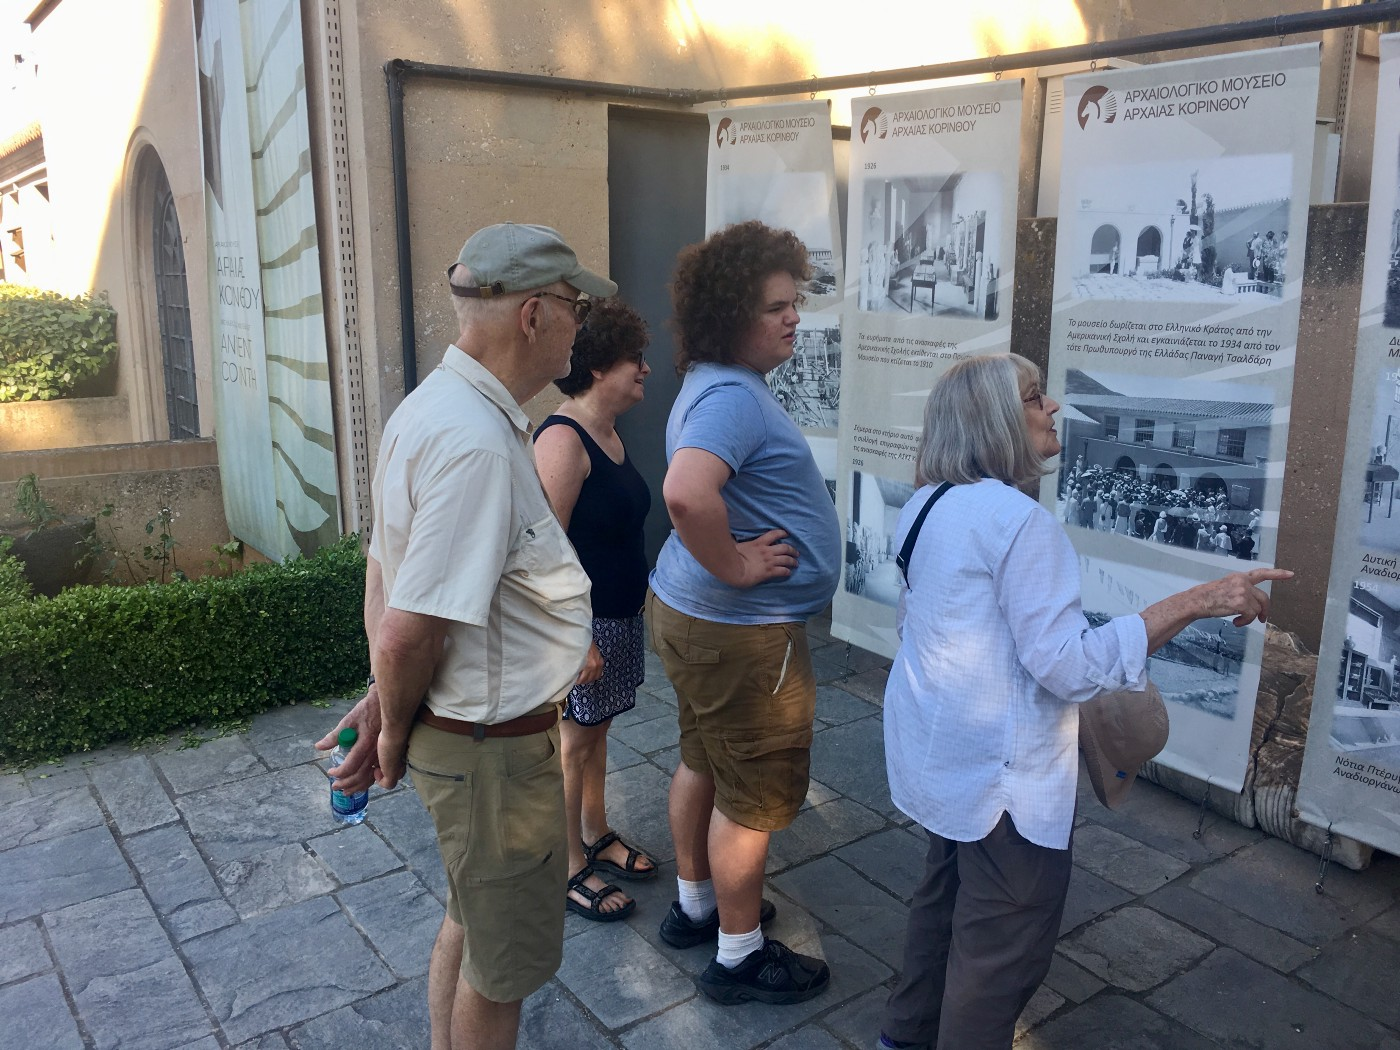 My mother leads a tour of the archaeological museum in Corinth with my father, while my wife Emily and my son Joshua listen